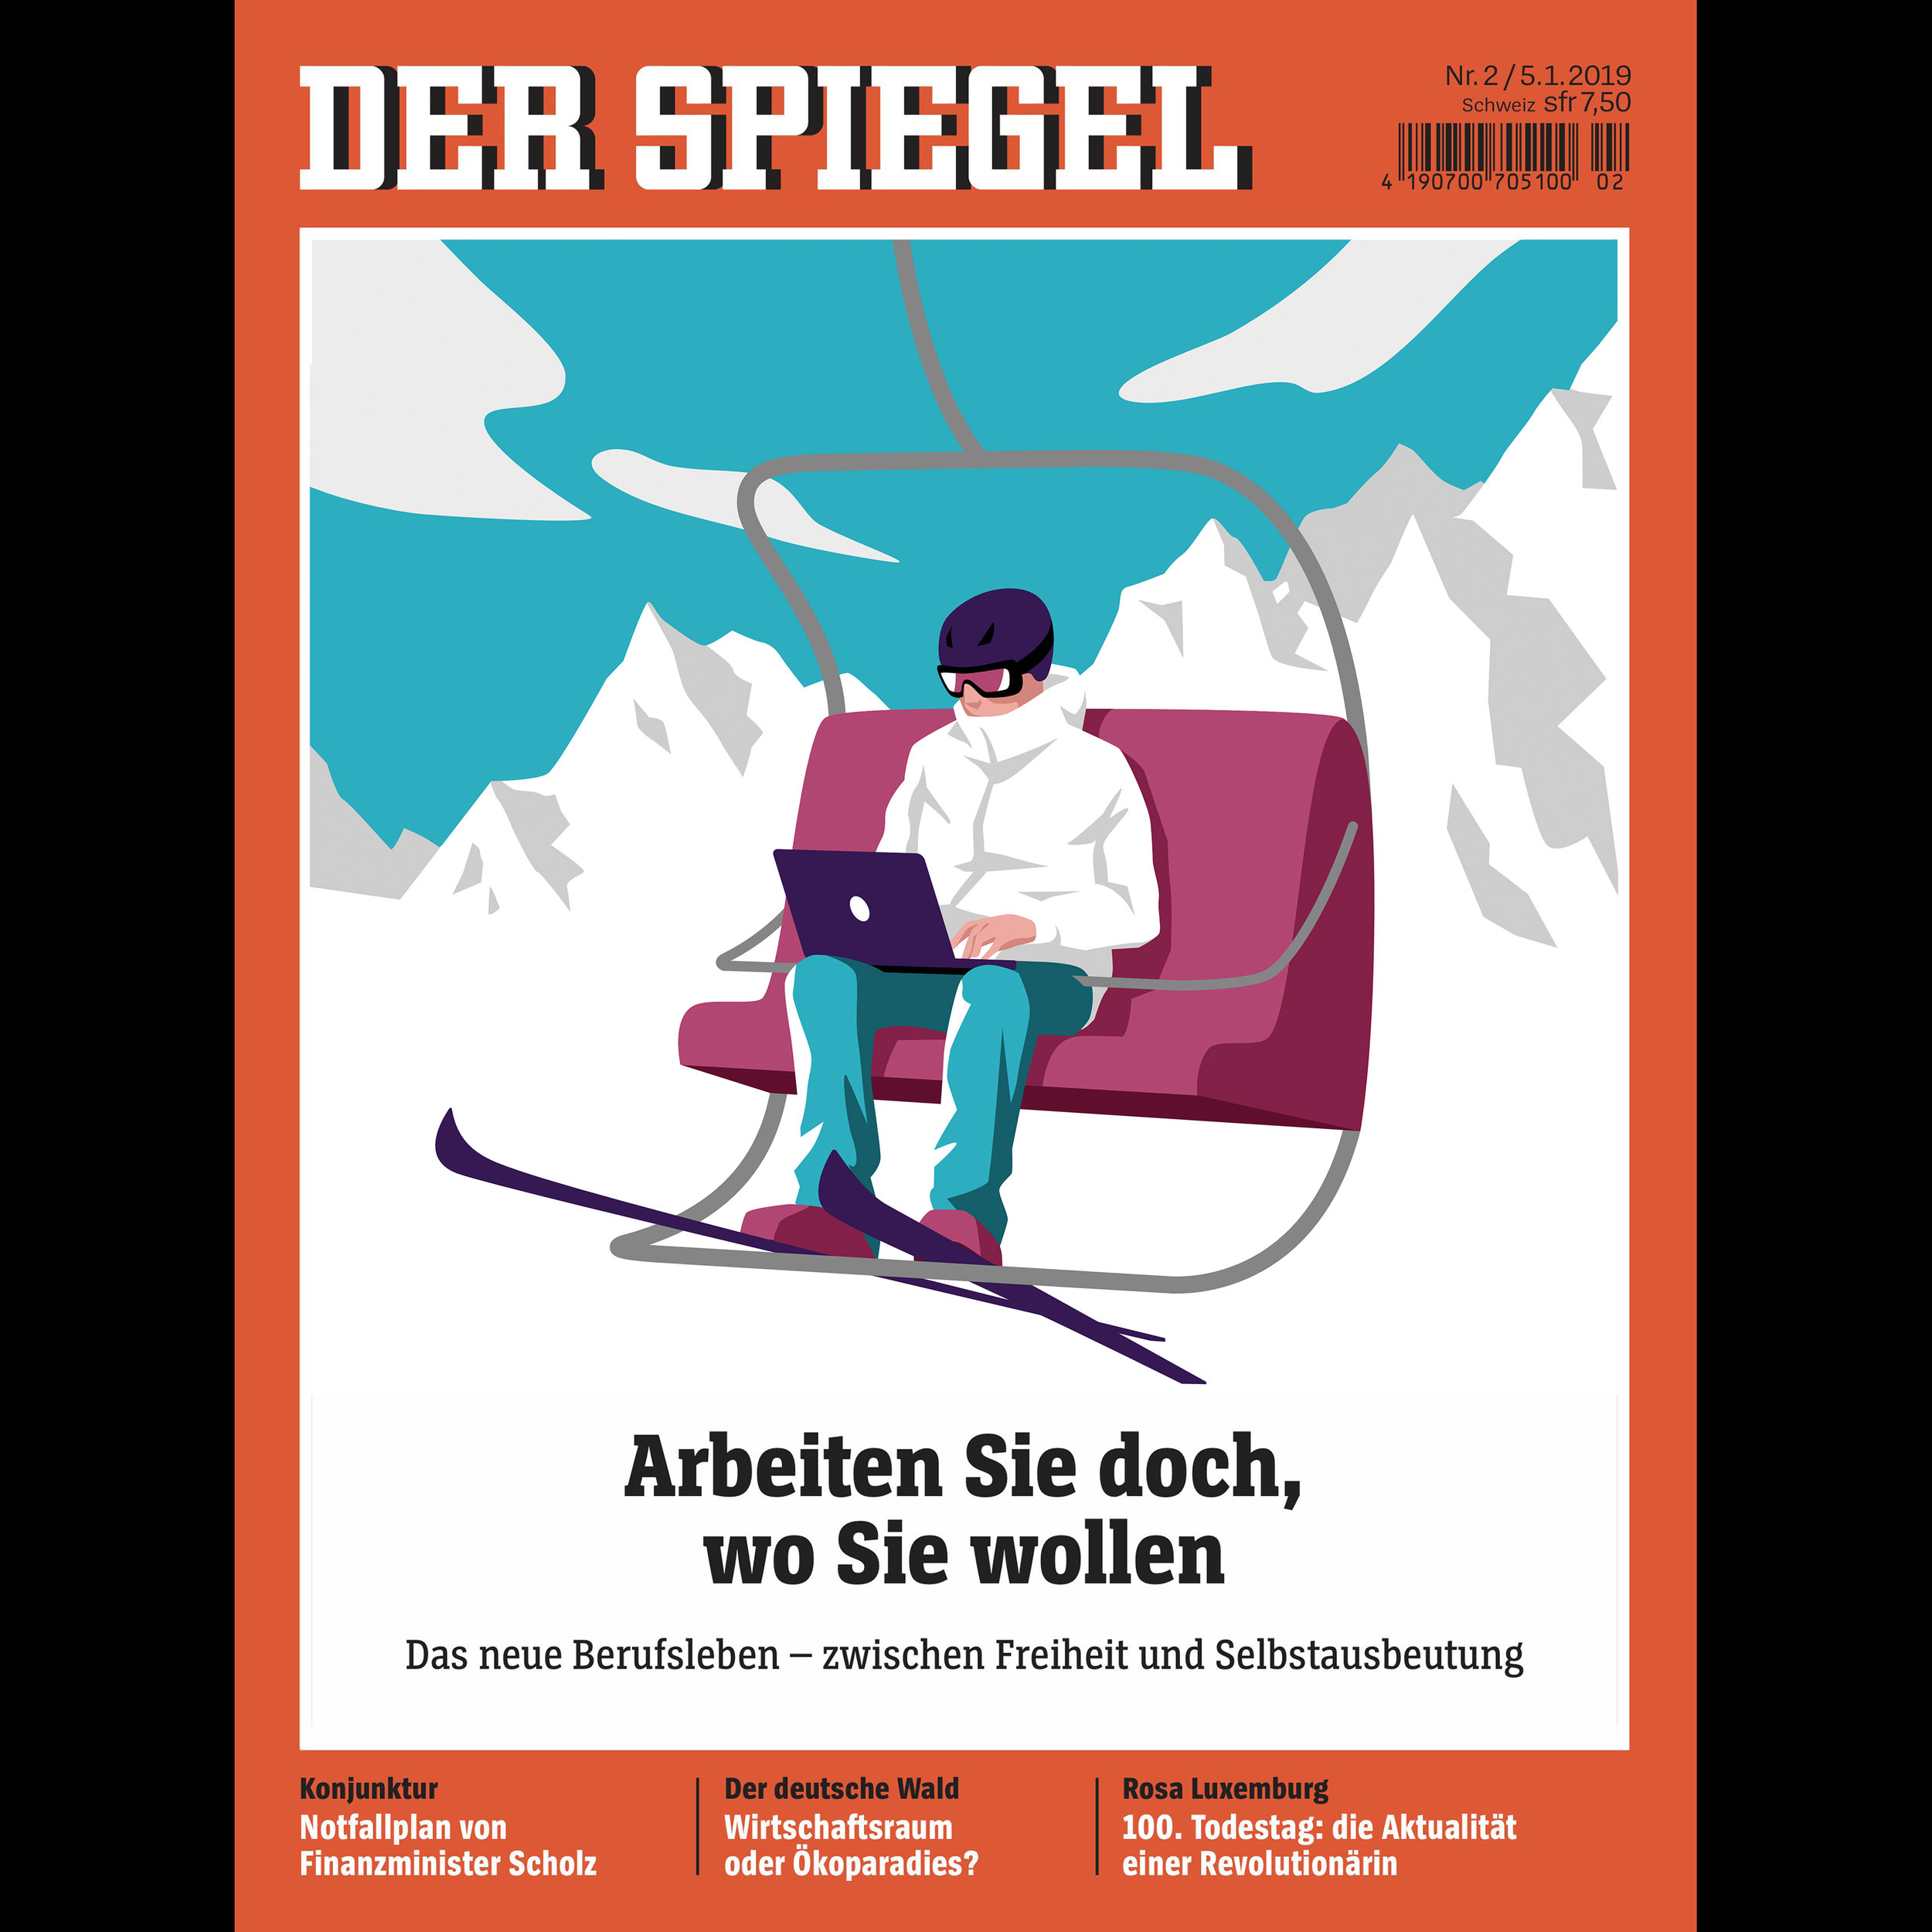 """Work from where ever you want"" for DER SPIEGEL"